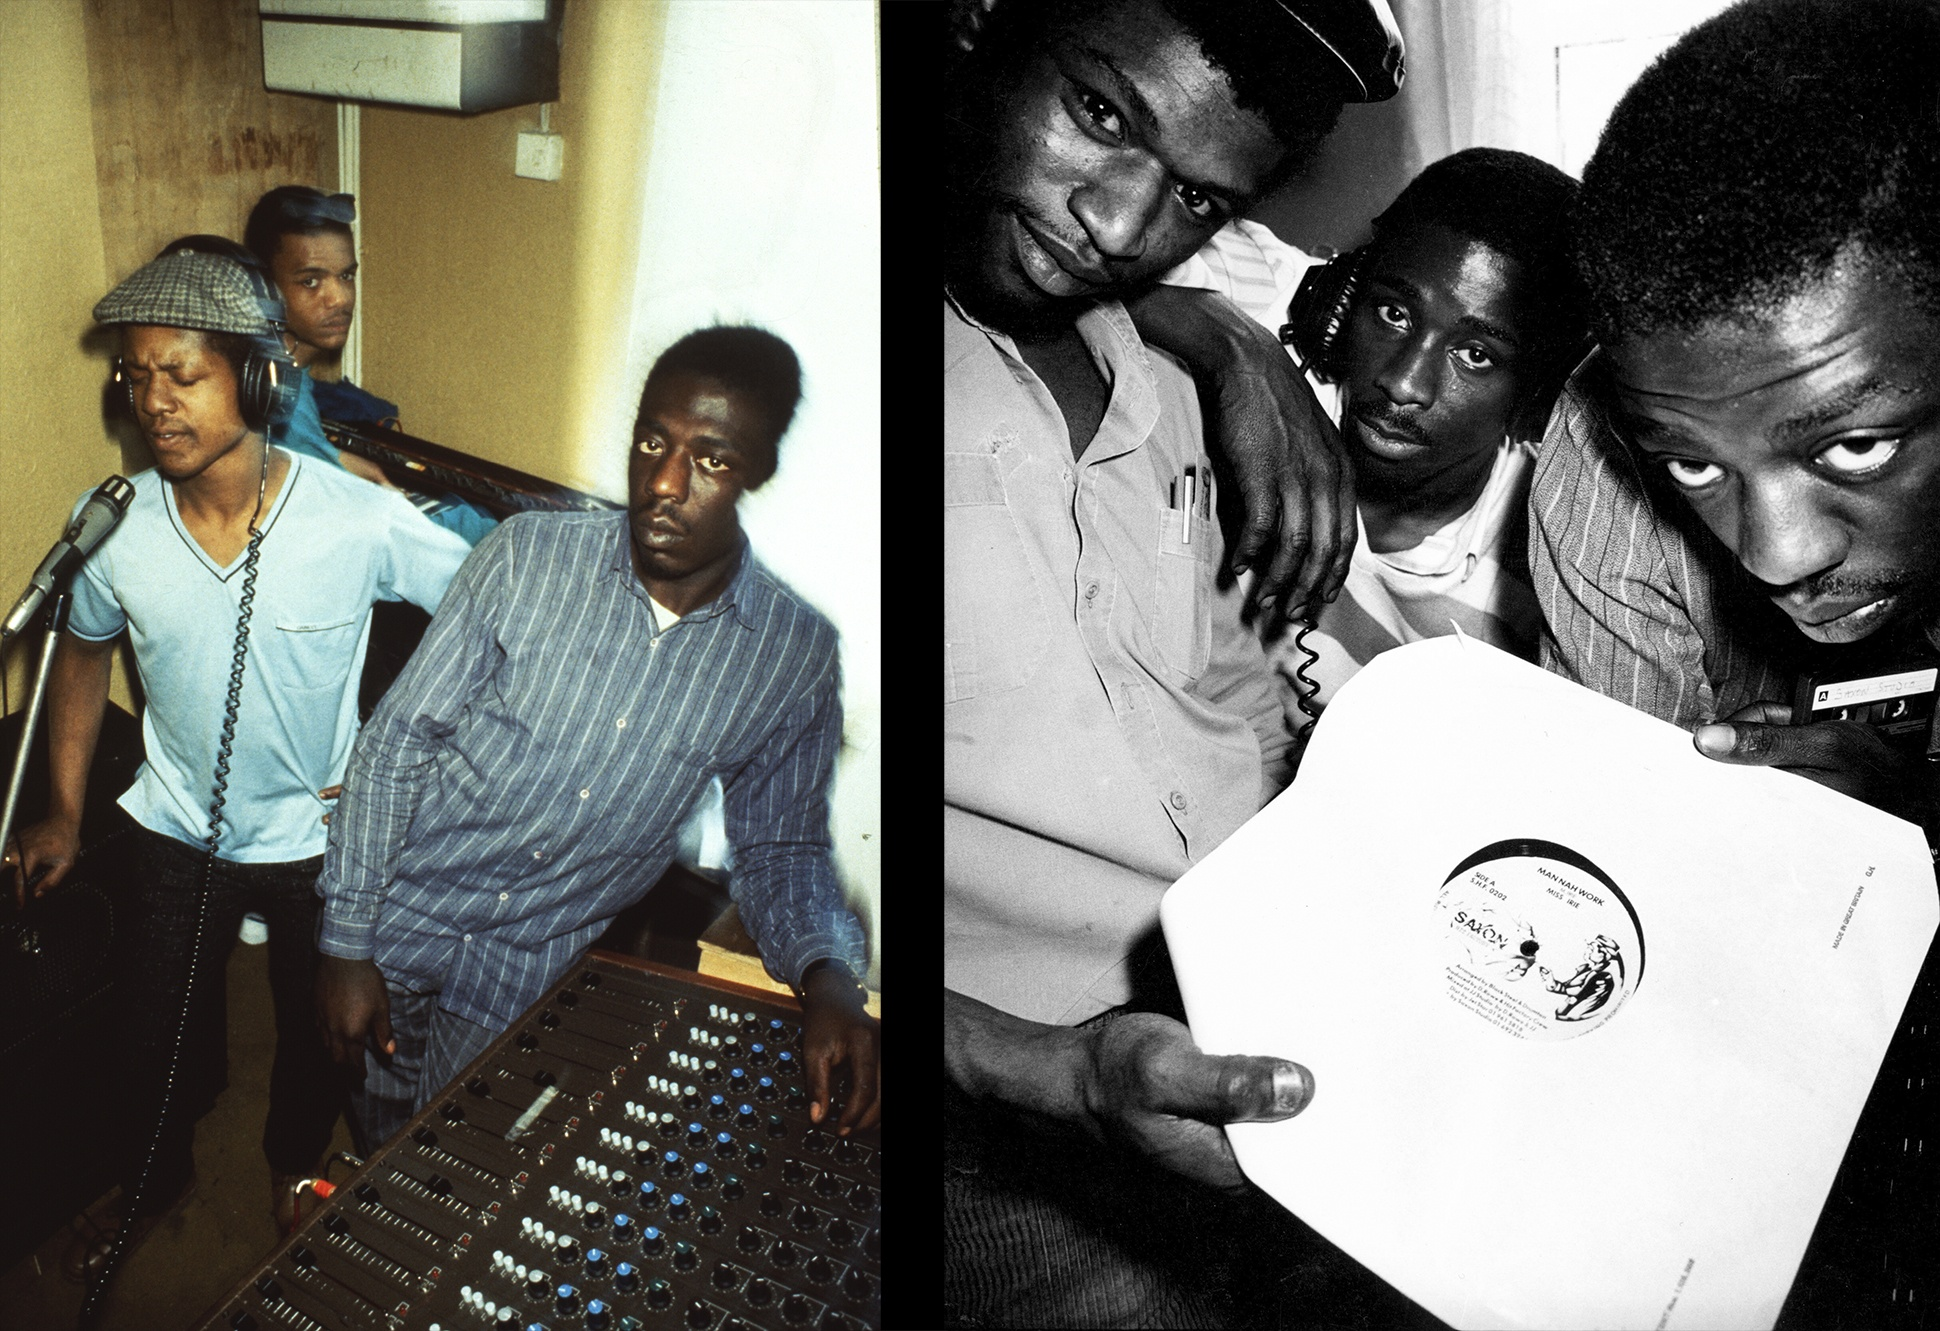 South London based Saxon Crew in their studio and posing with a record, London, 1980s by Normski